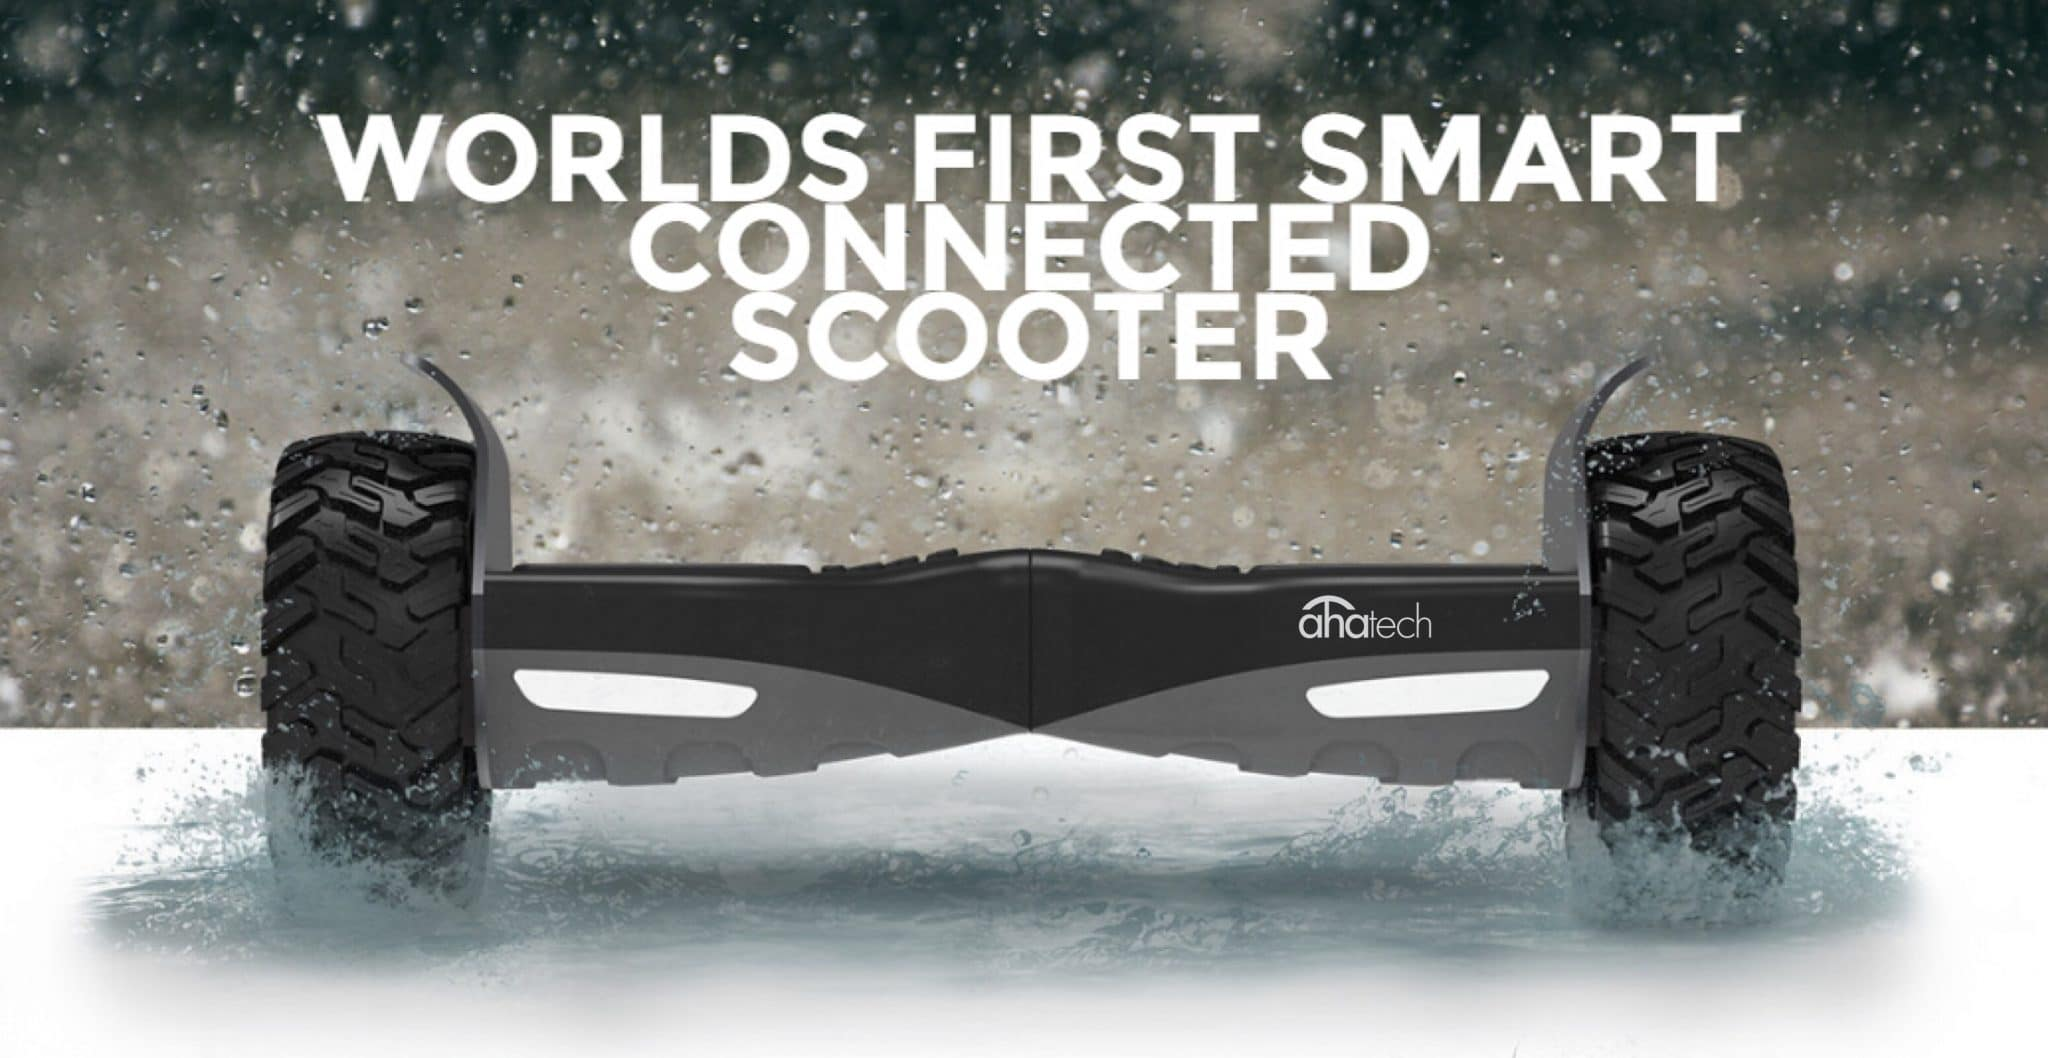 Smart Connected Scooter